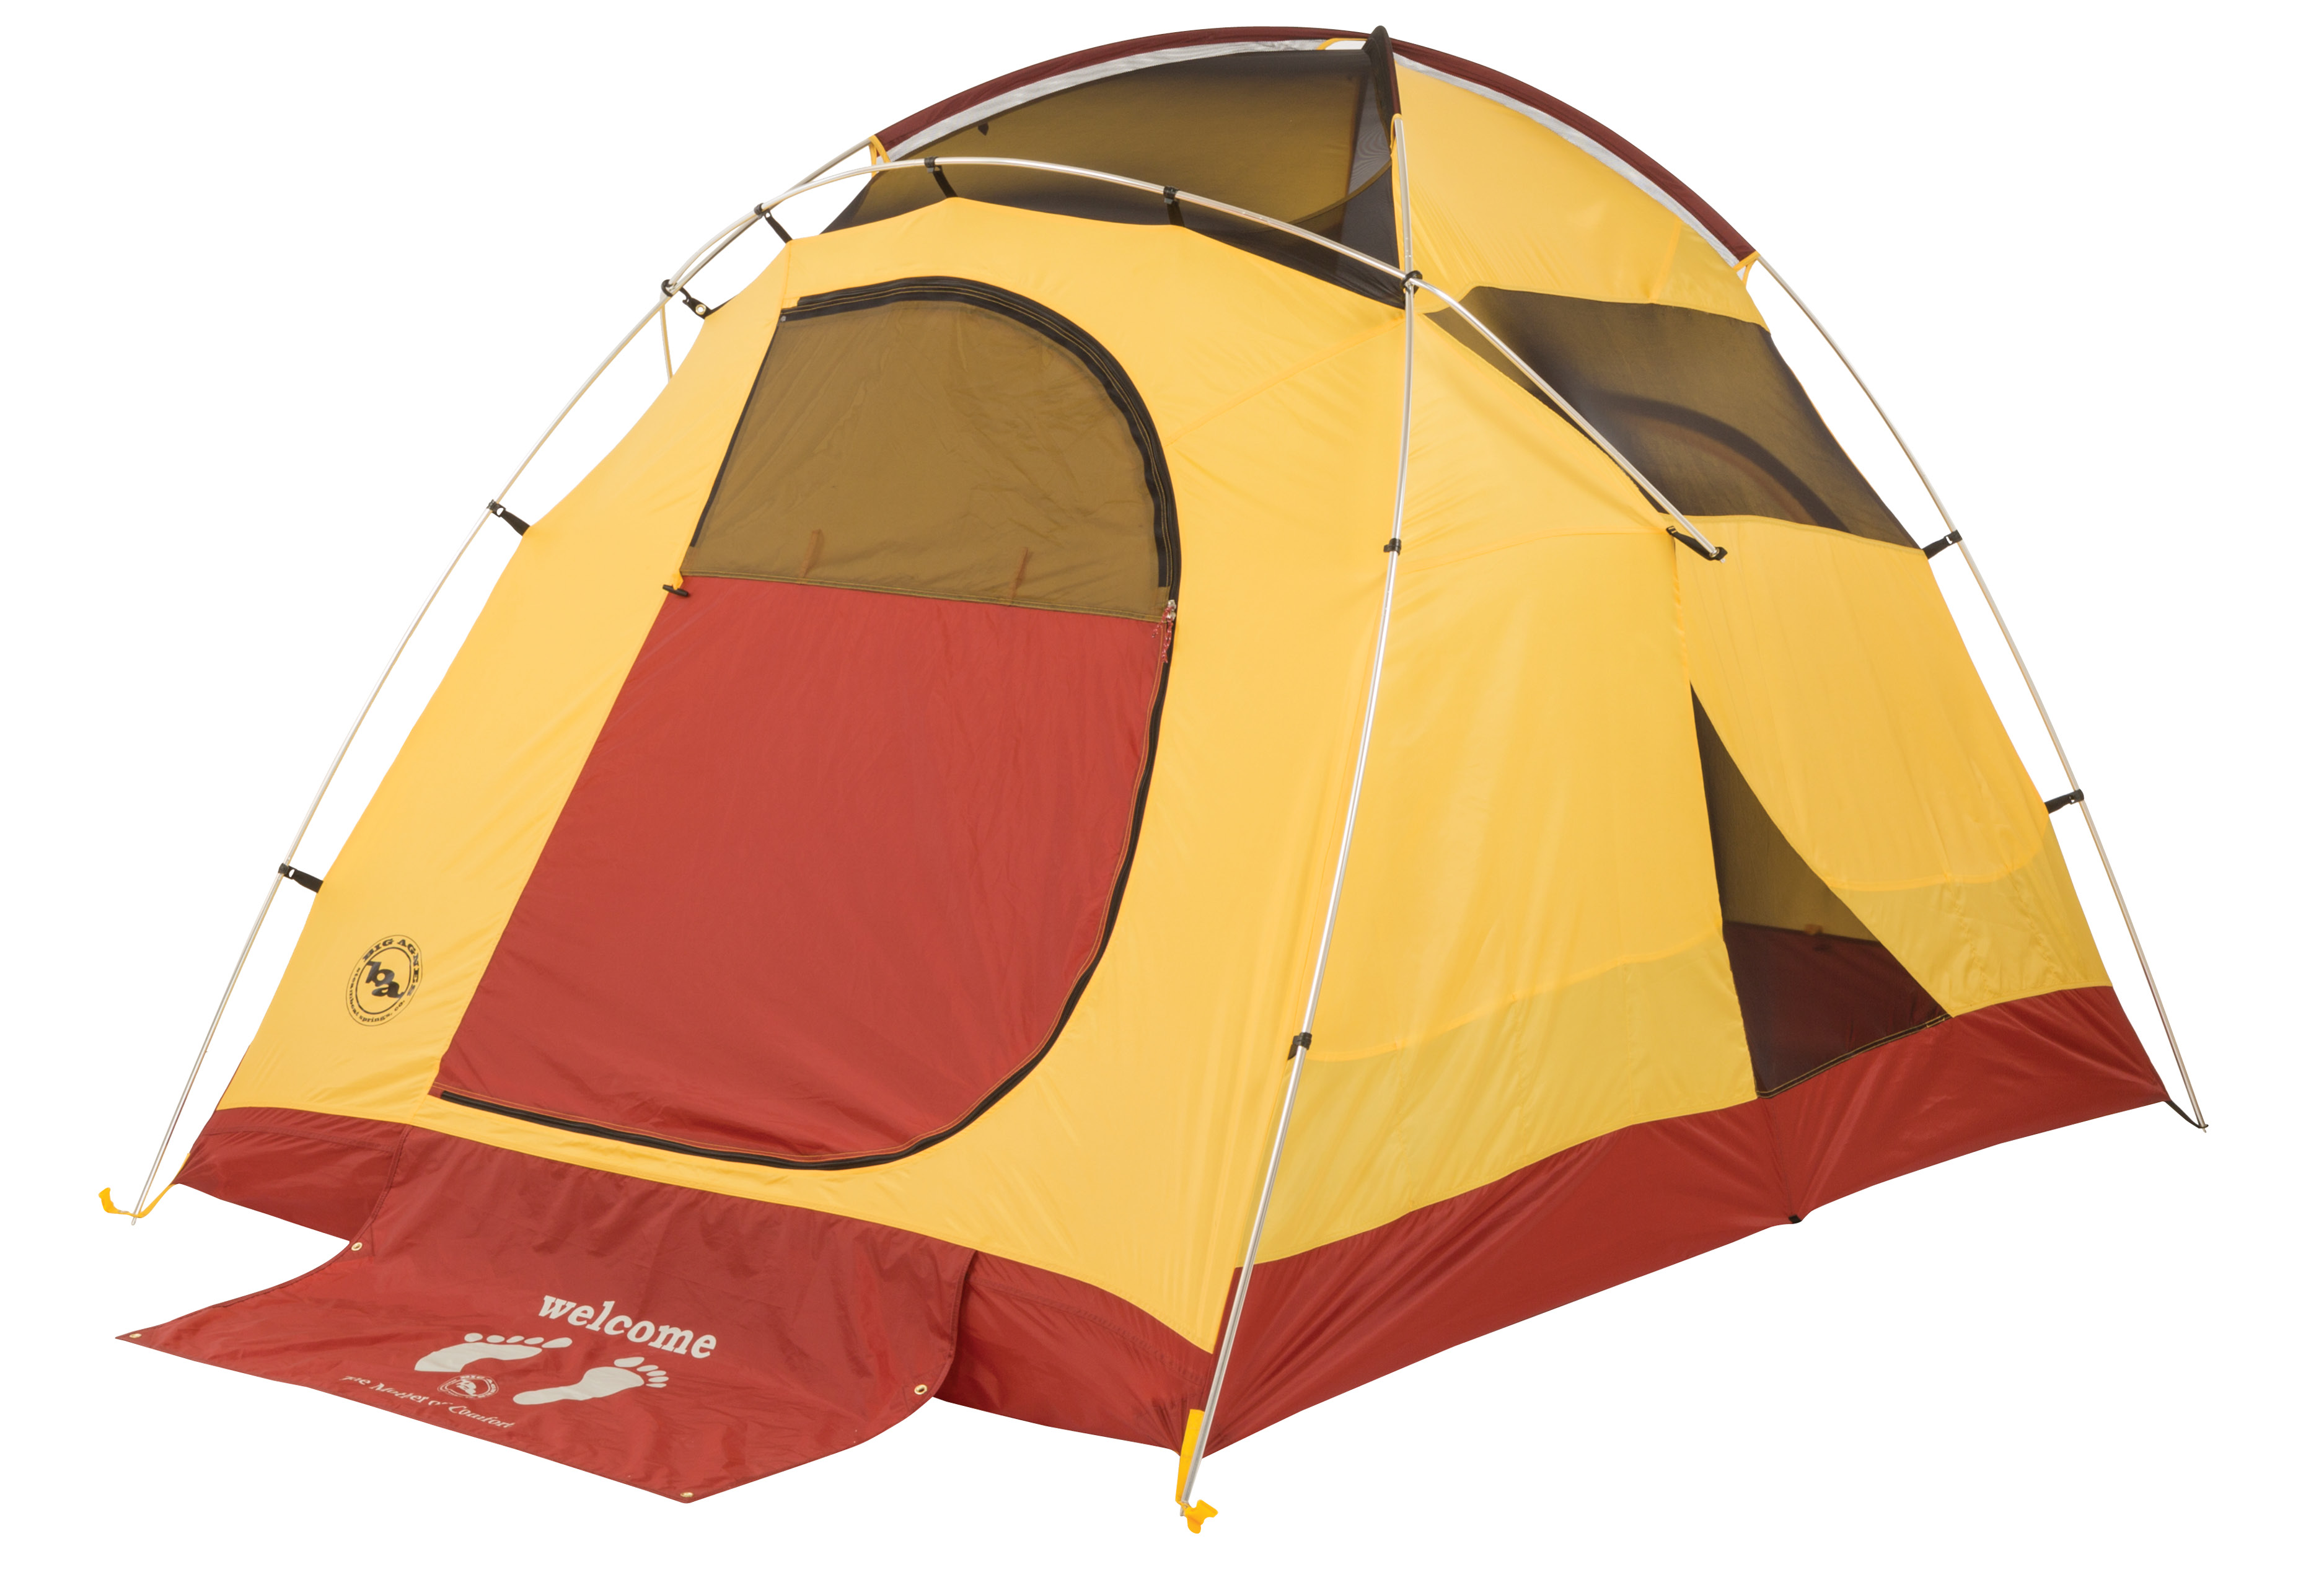 ... Picture 3 of 10; Picture 4 of 10  sc 1 st  eBay & Big Agnes Big House 4 Person 3 Season Camping Tent TBH414 | eBay